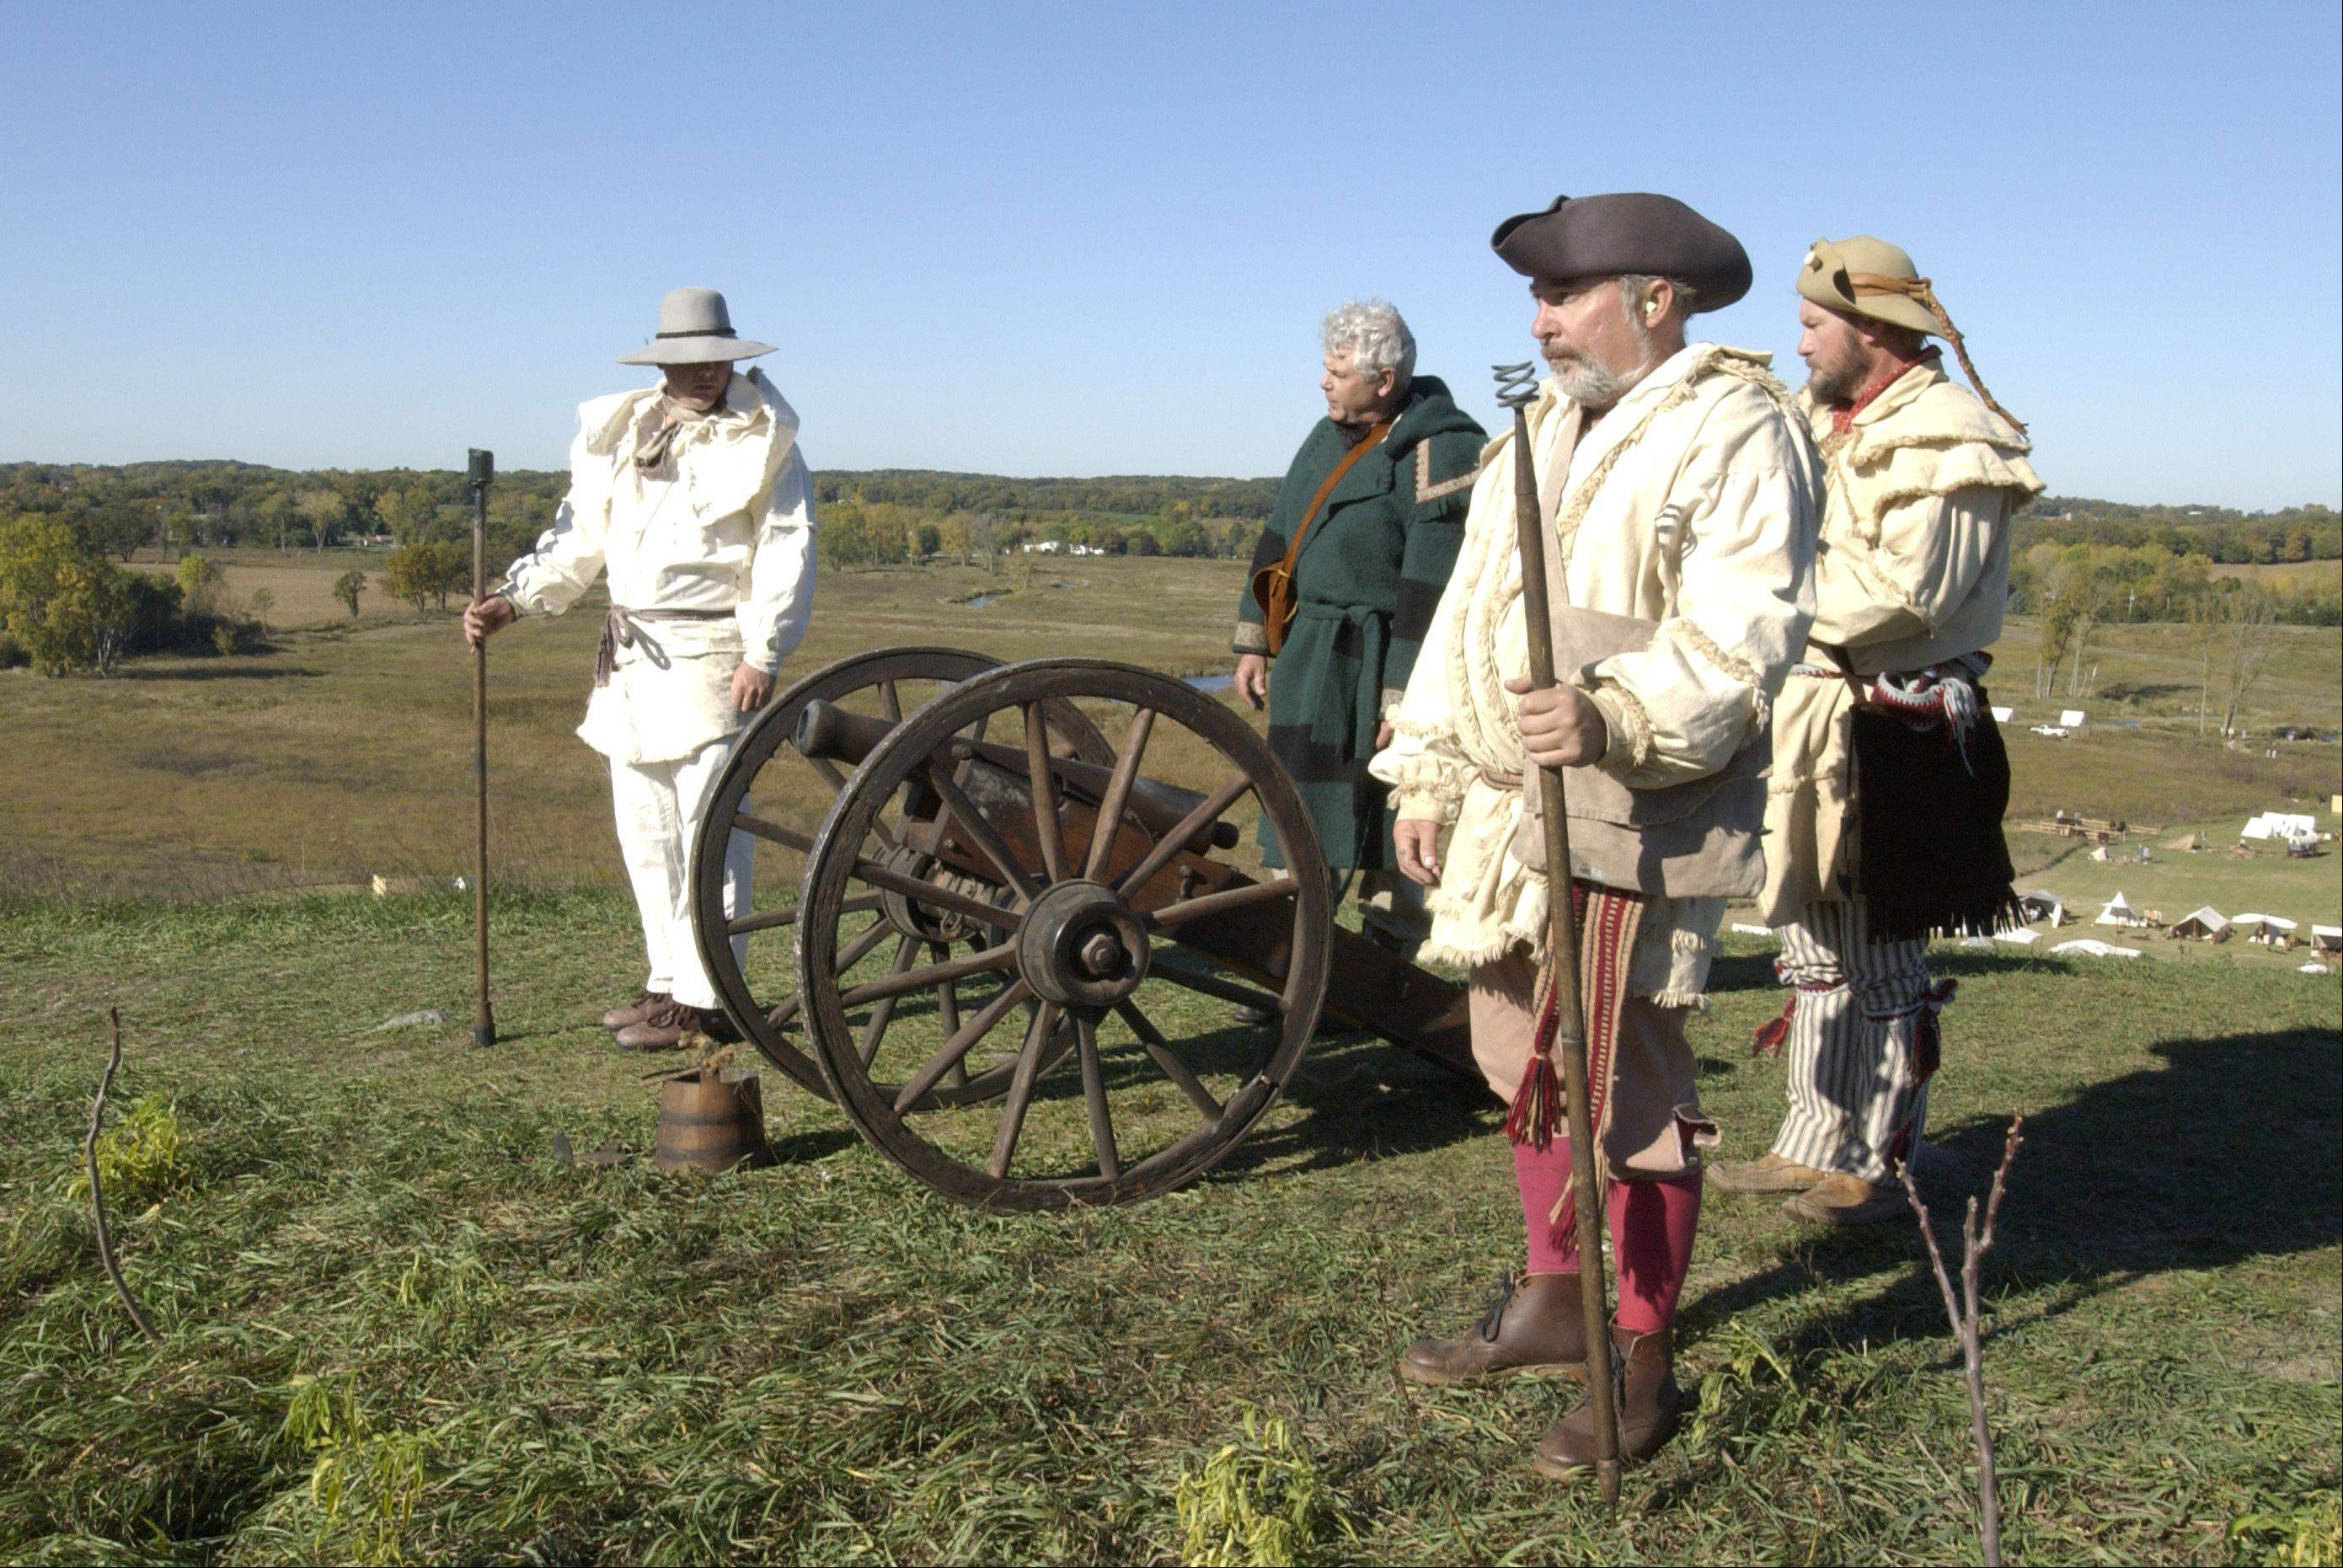 The cannon crew signals the opening and close of the Trail of History event.